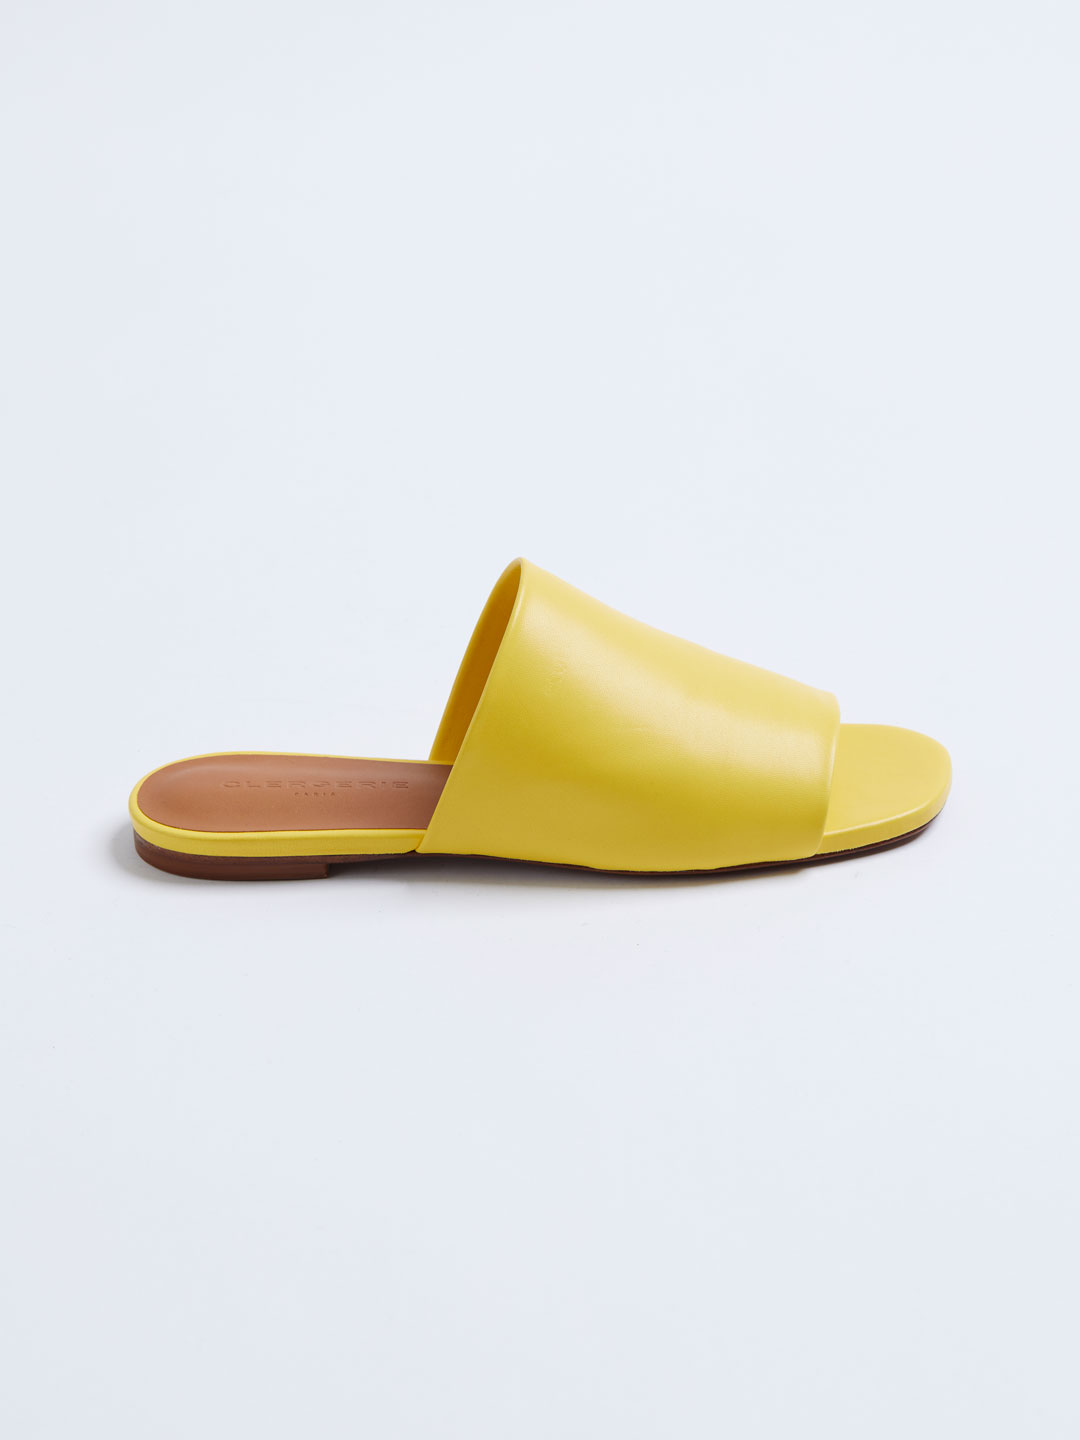 ITOU Flat Sandals - Yellow